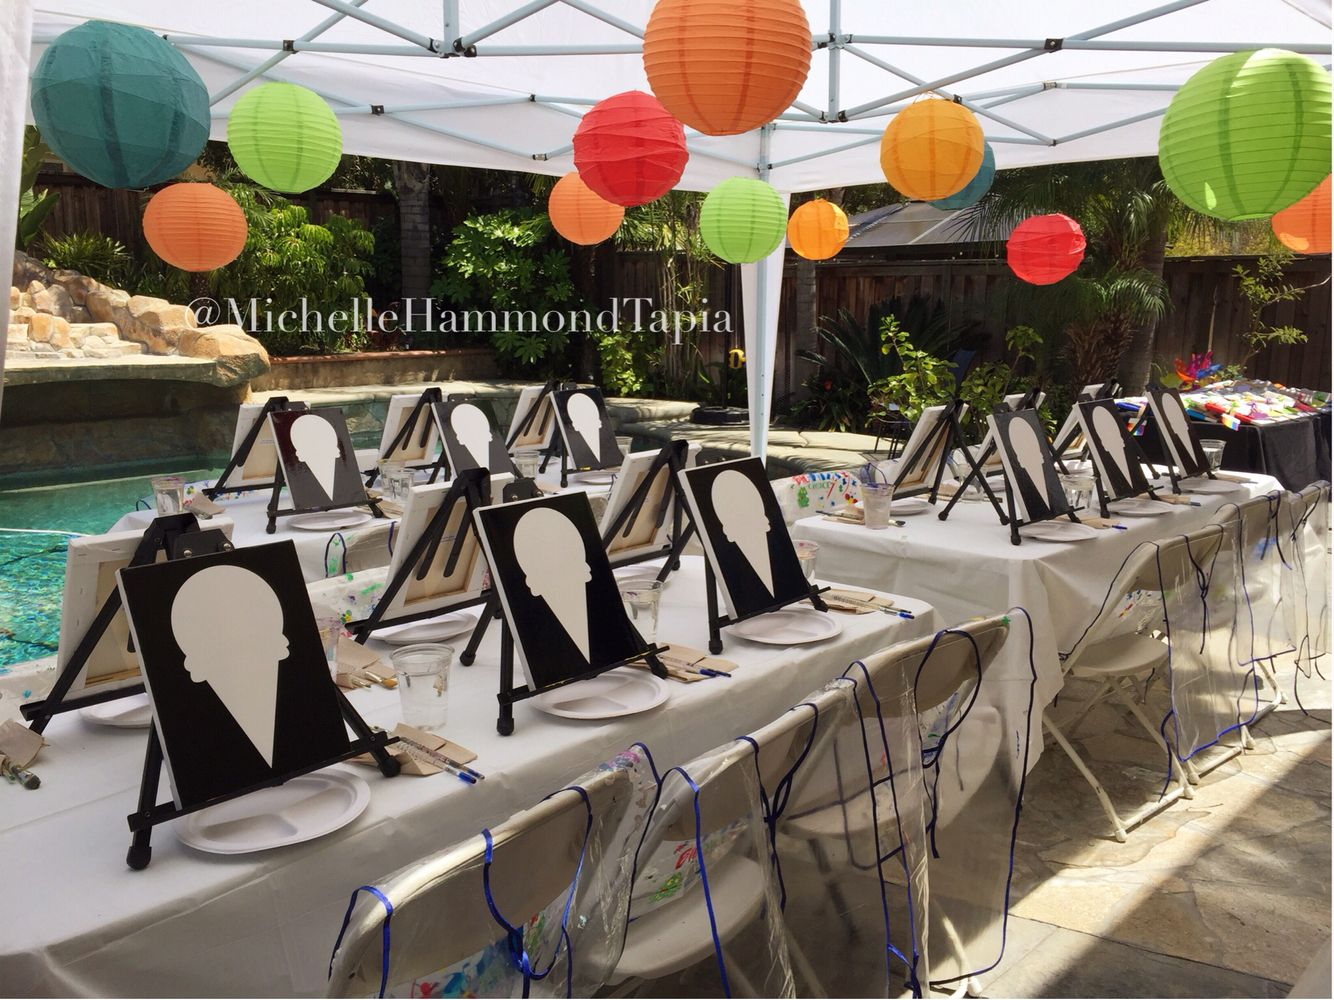 Rice paper lanterns and canopy setup. Ice cream cone stencil on canvas. & Kidu0027s Art / Paint party. Rice paper lanterns and canopy setup. Ice ...